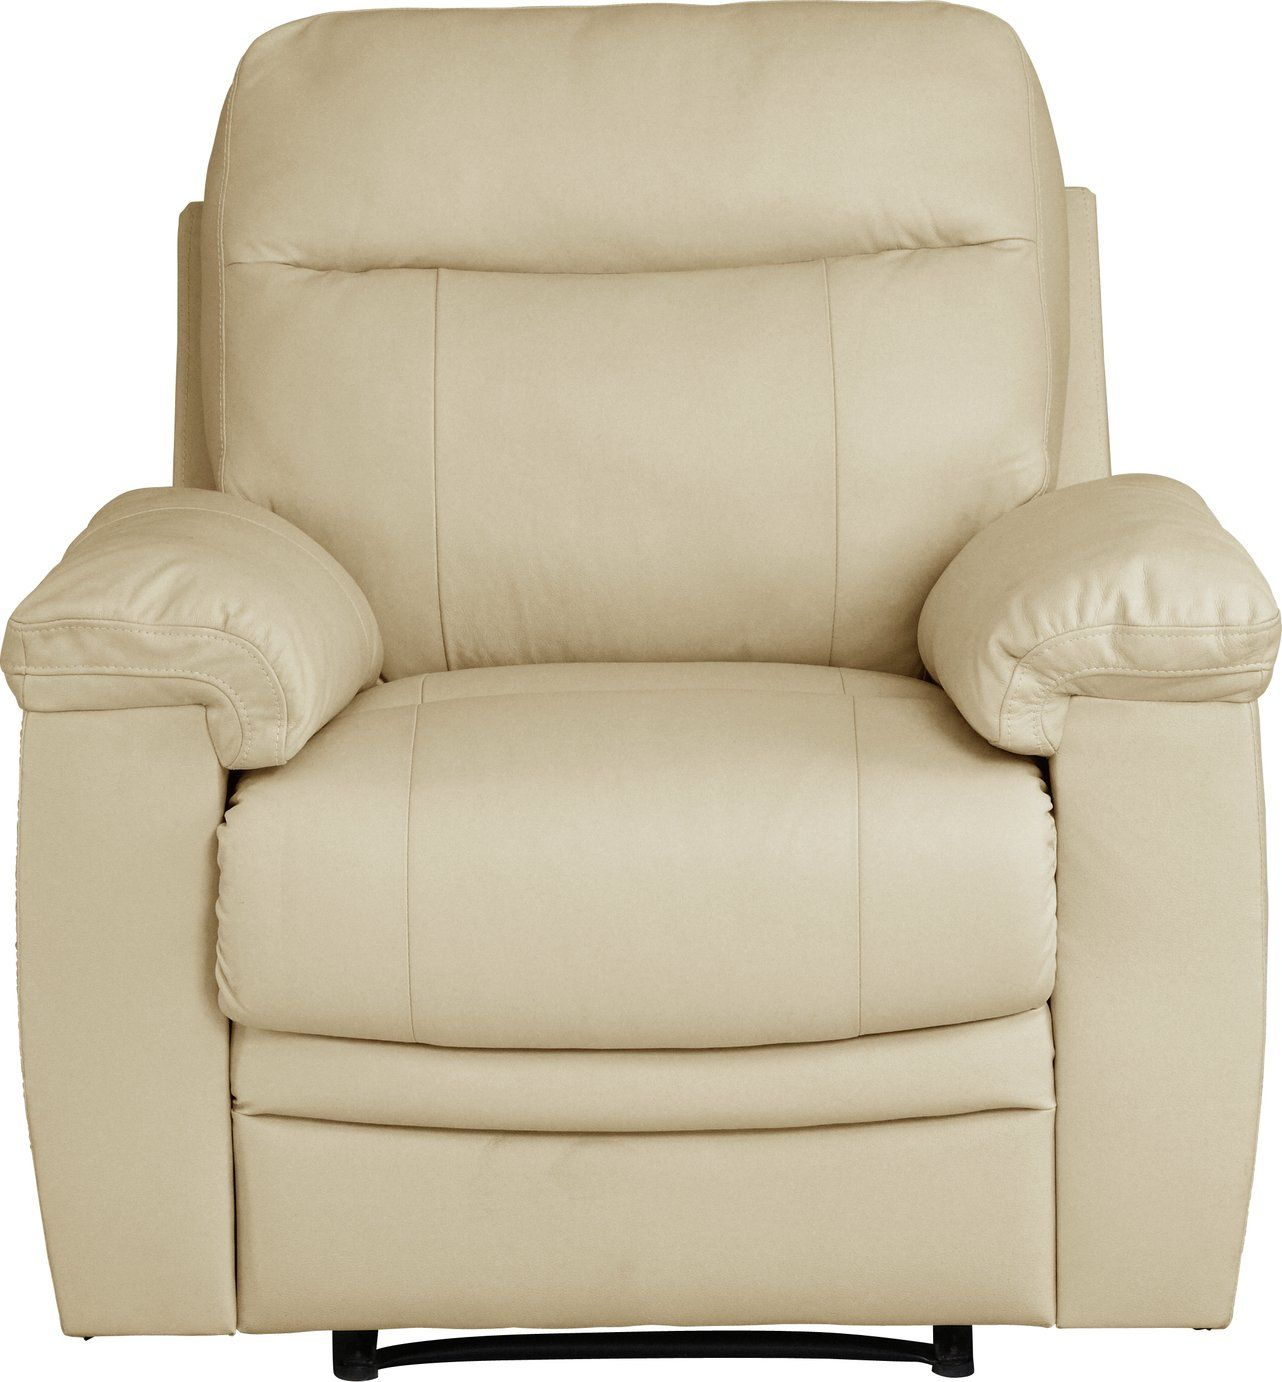 Buy Argos Home Paolo Leather Mix Manual Recliner Chair Ivory